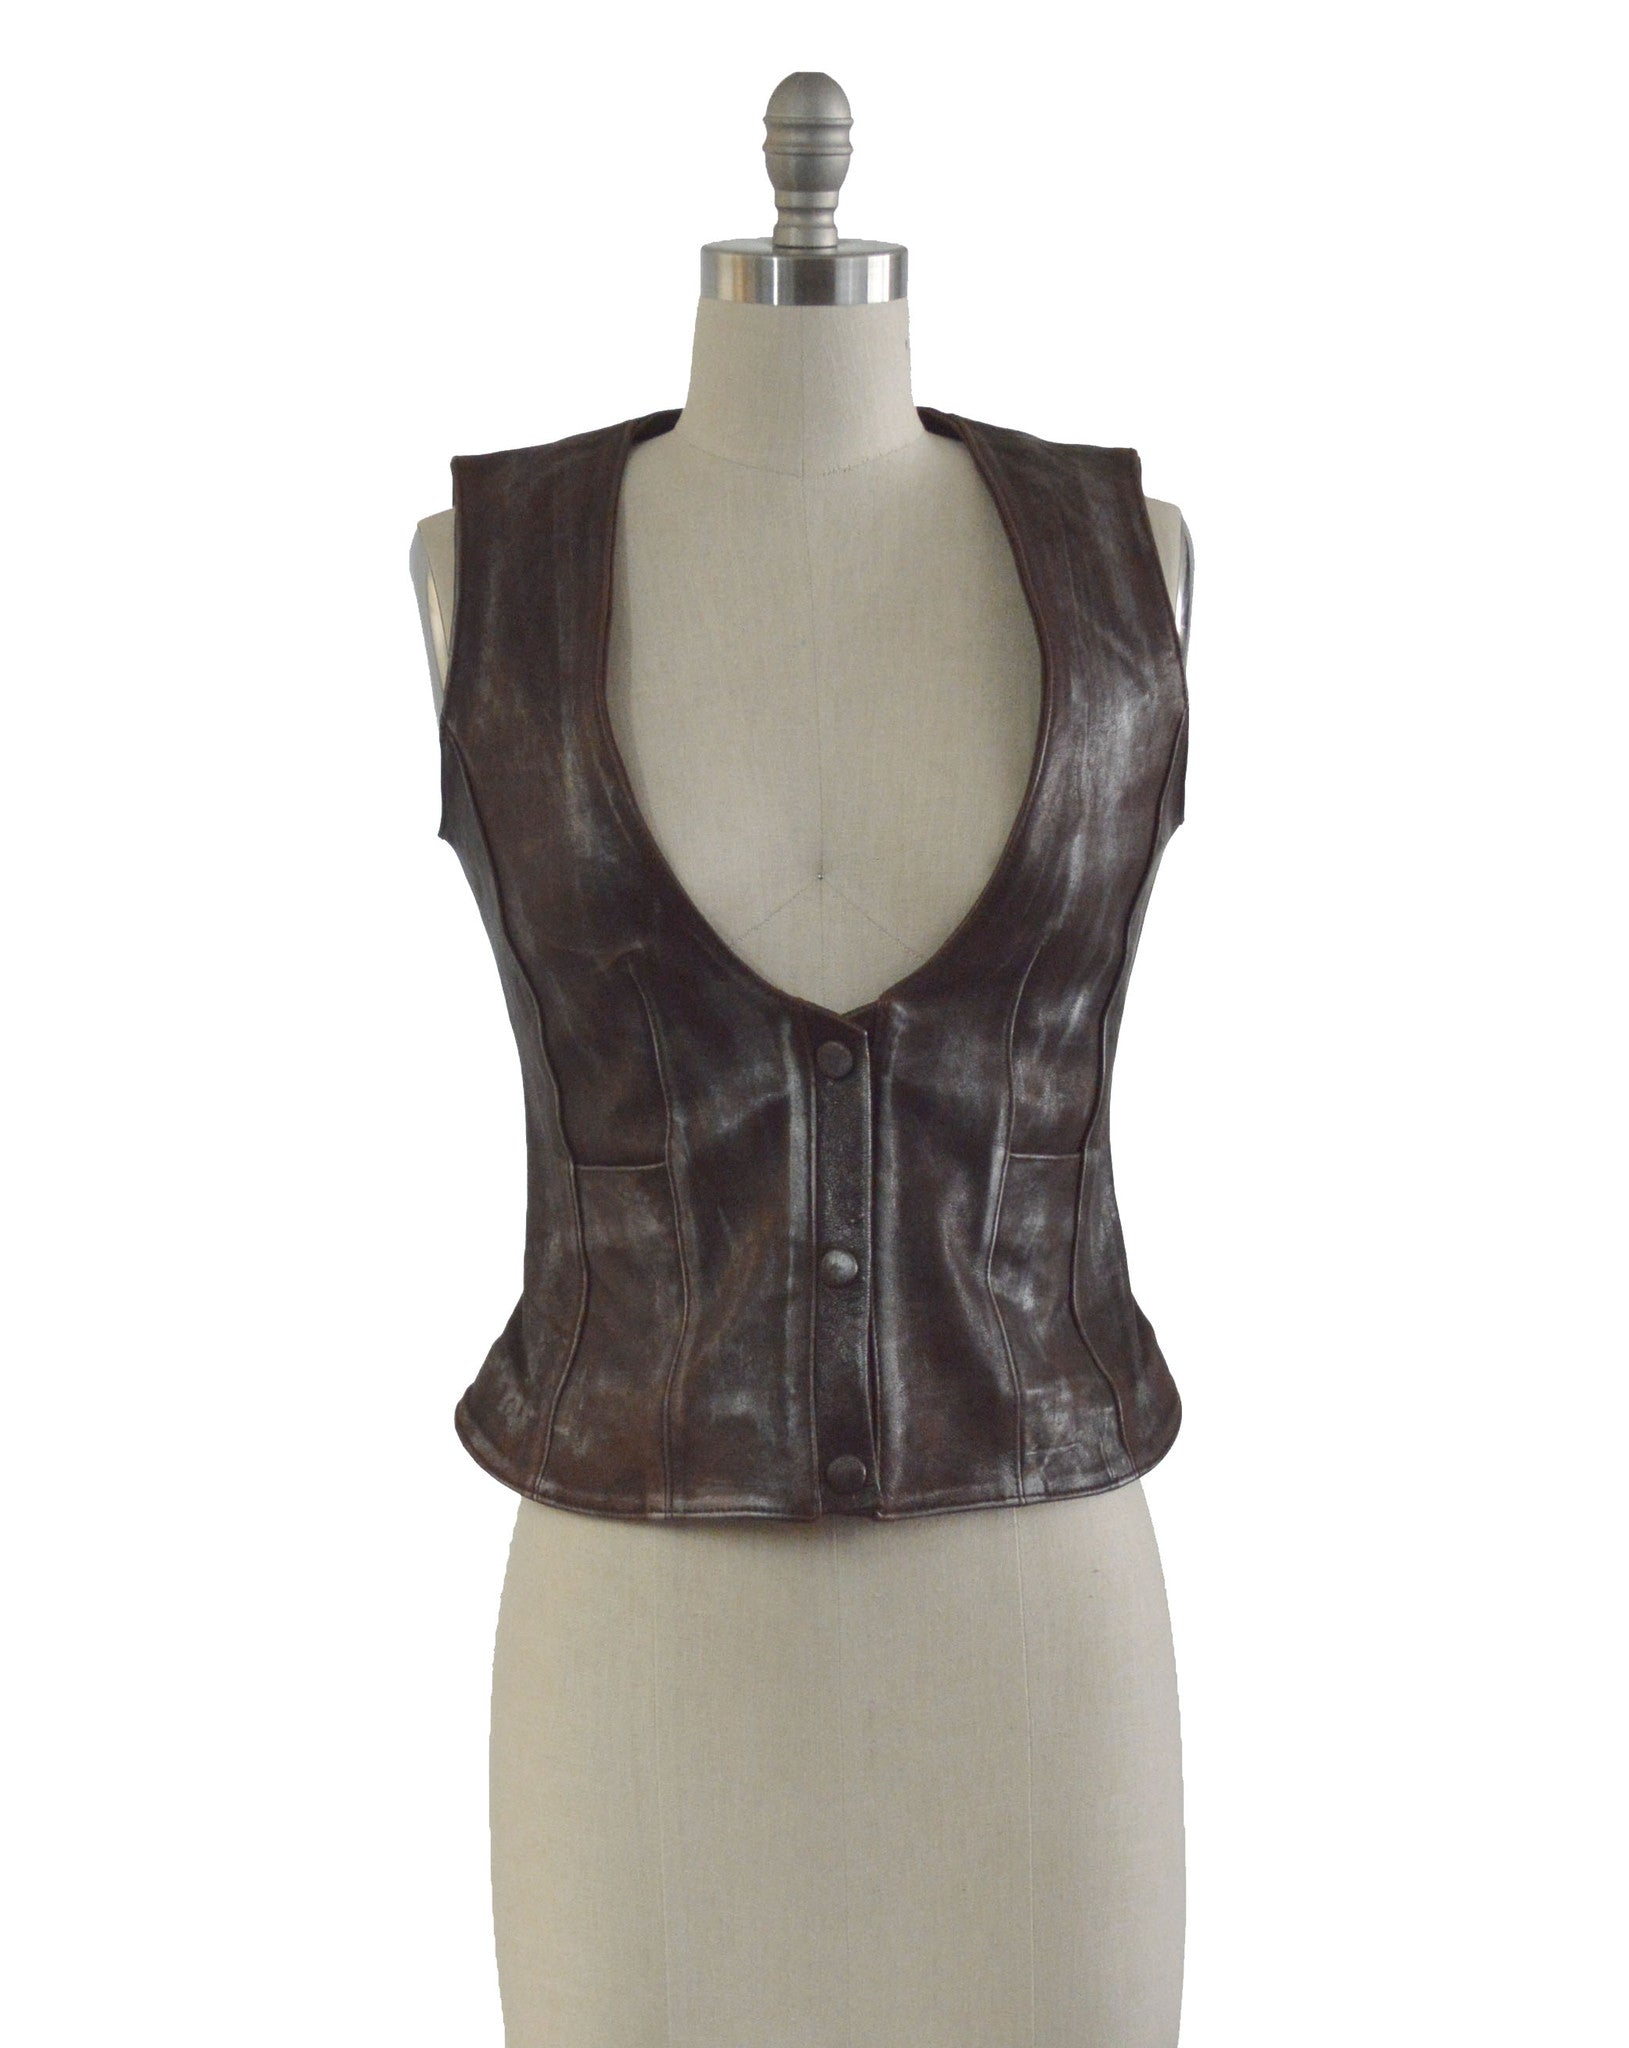 The Distressed Lambskin Vest